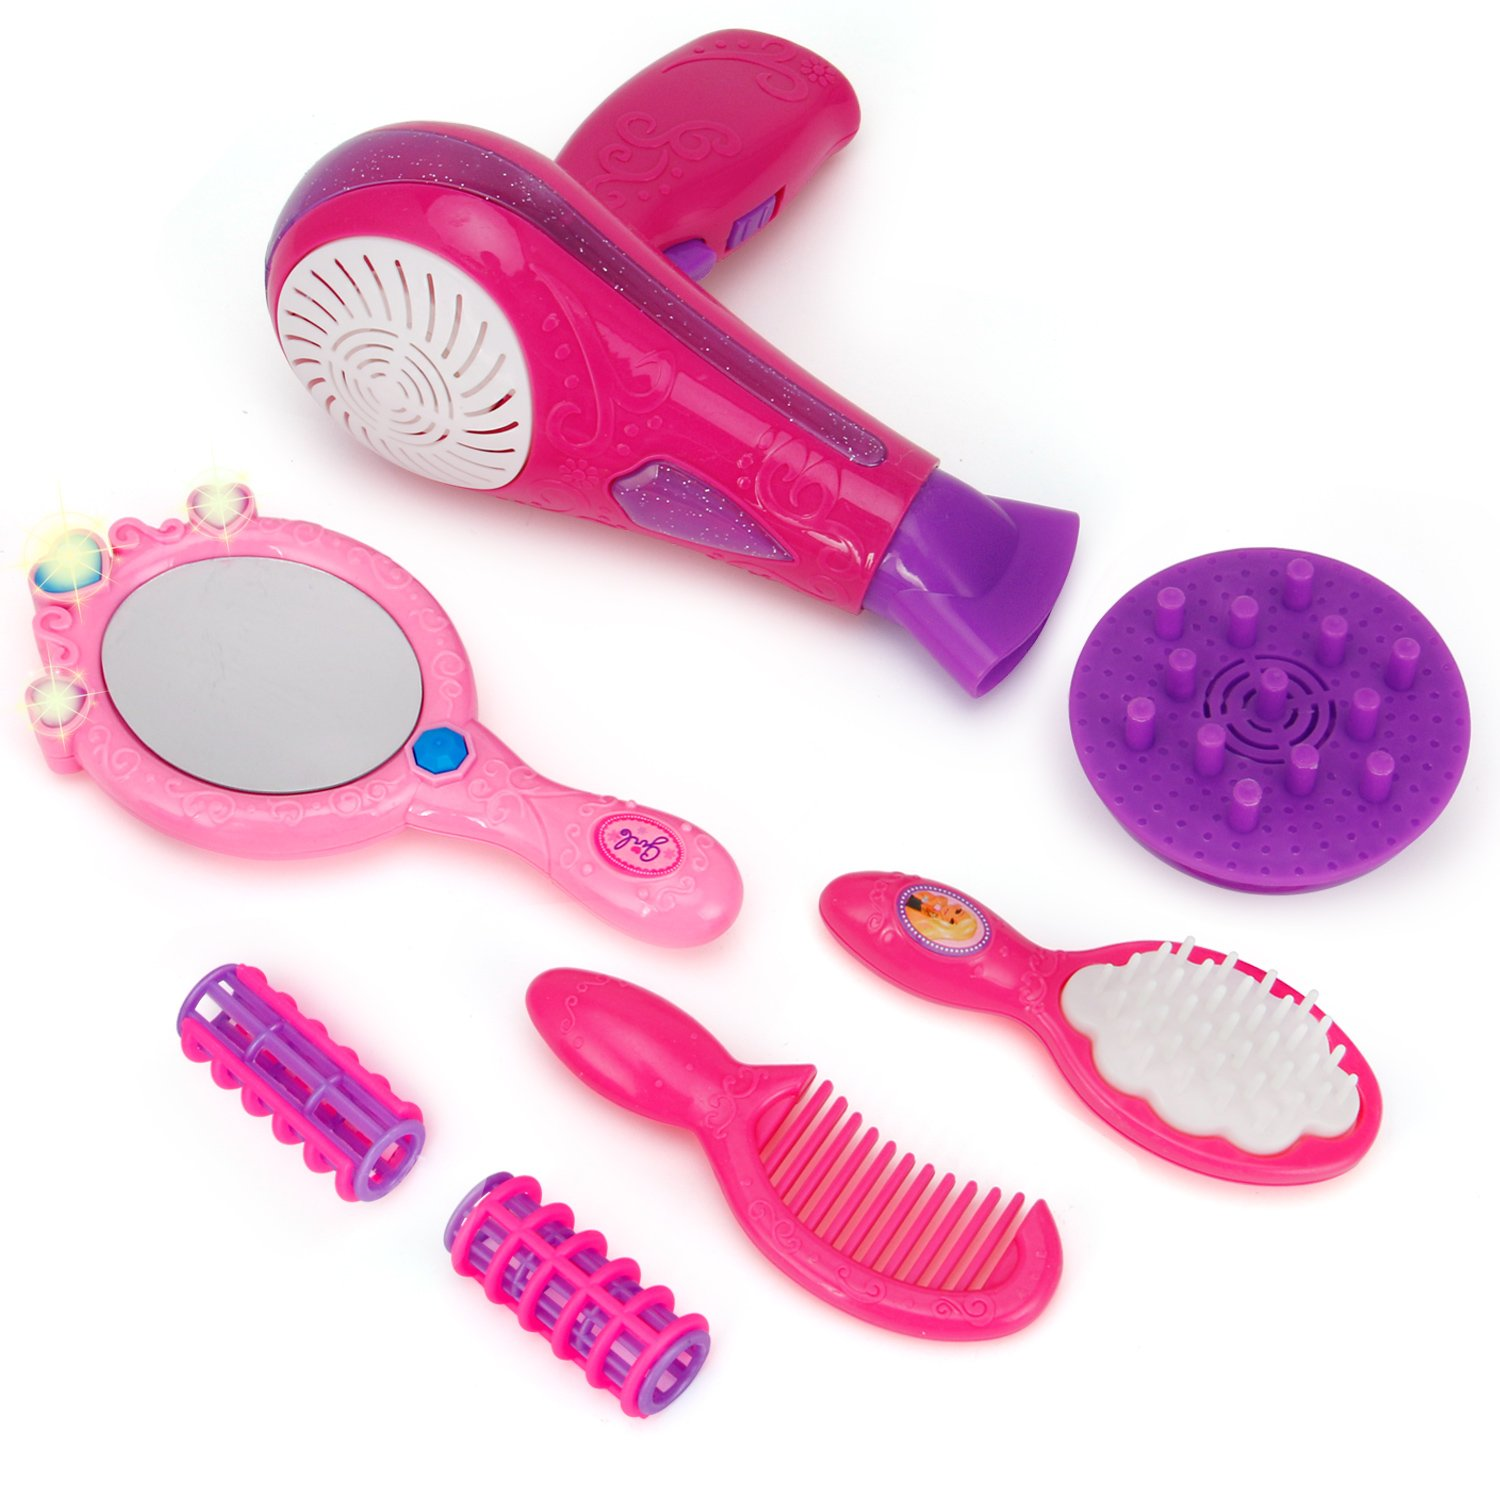 Liberty Imports Vogue Girls Beauty Salon Fashion Play Set with Hairdryer, Mirror & Styling Accessories by Liberty Imports (Image #4)